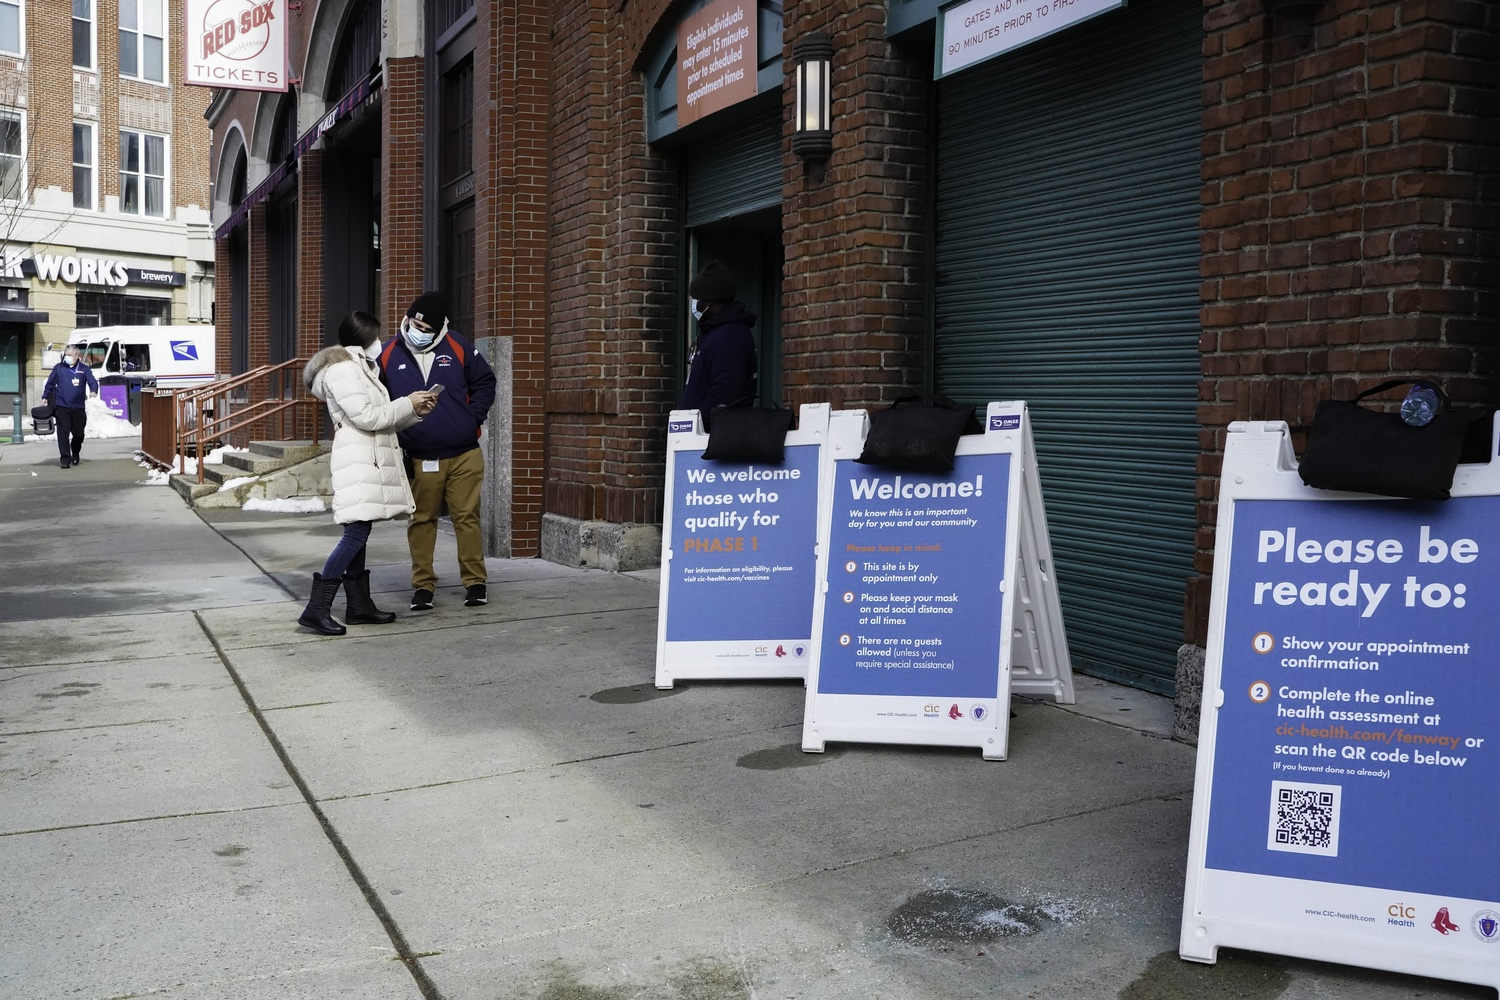 The City of Cambridge does not have its own public vaccination site, but the state's second largest vaccination site opened Feb. 1 just across the Charles River at Fenway Park in Boston.